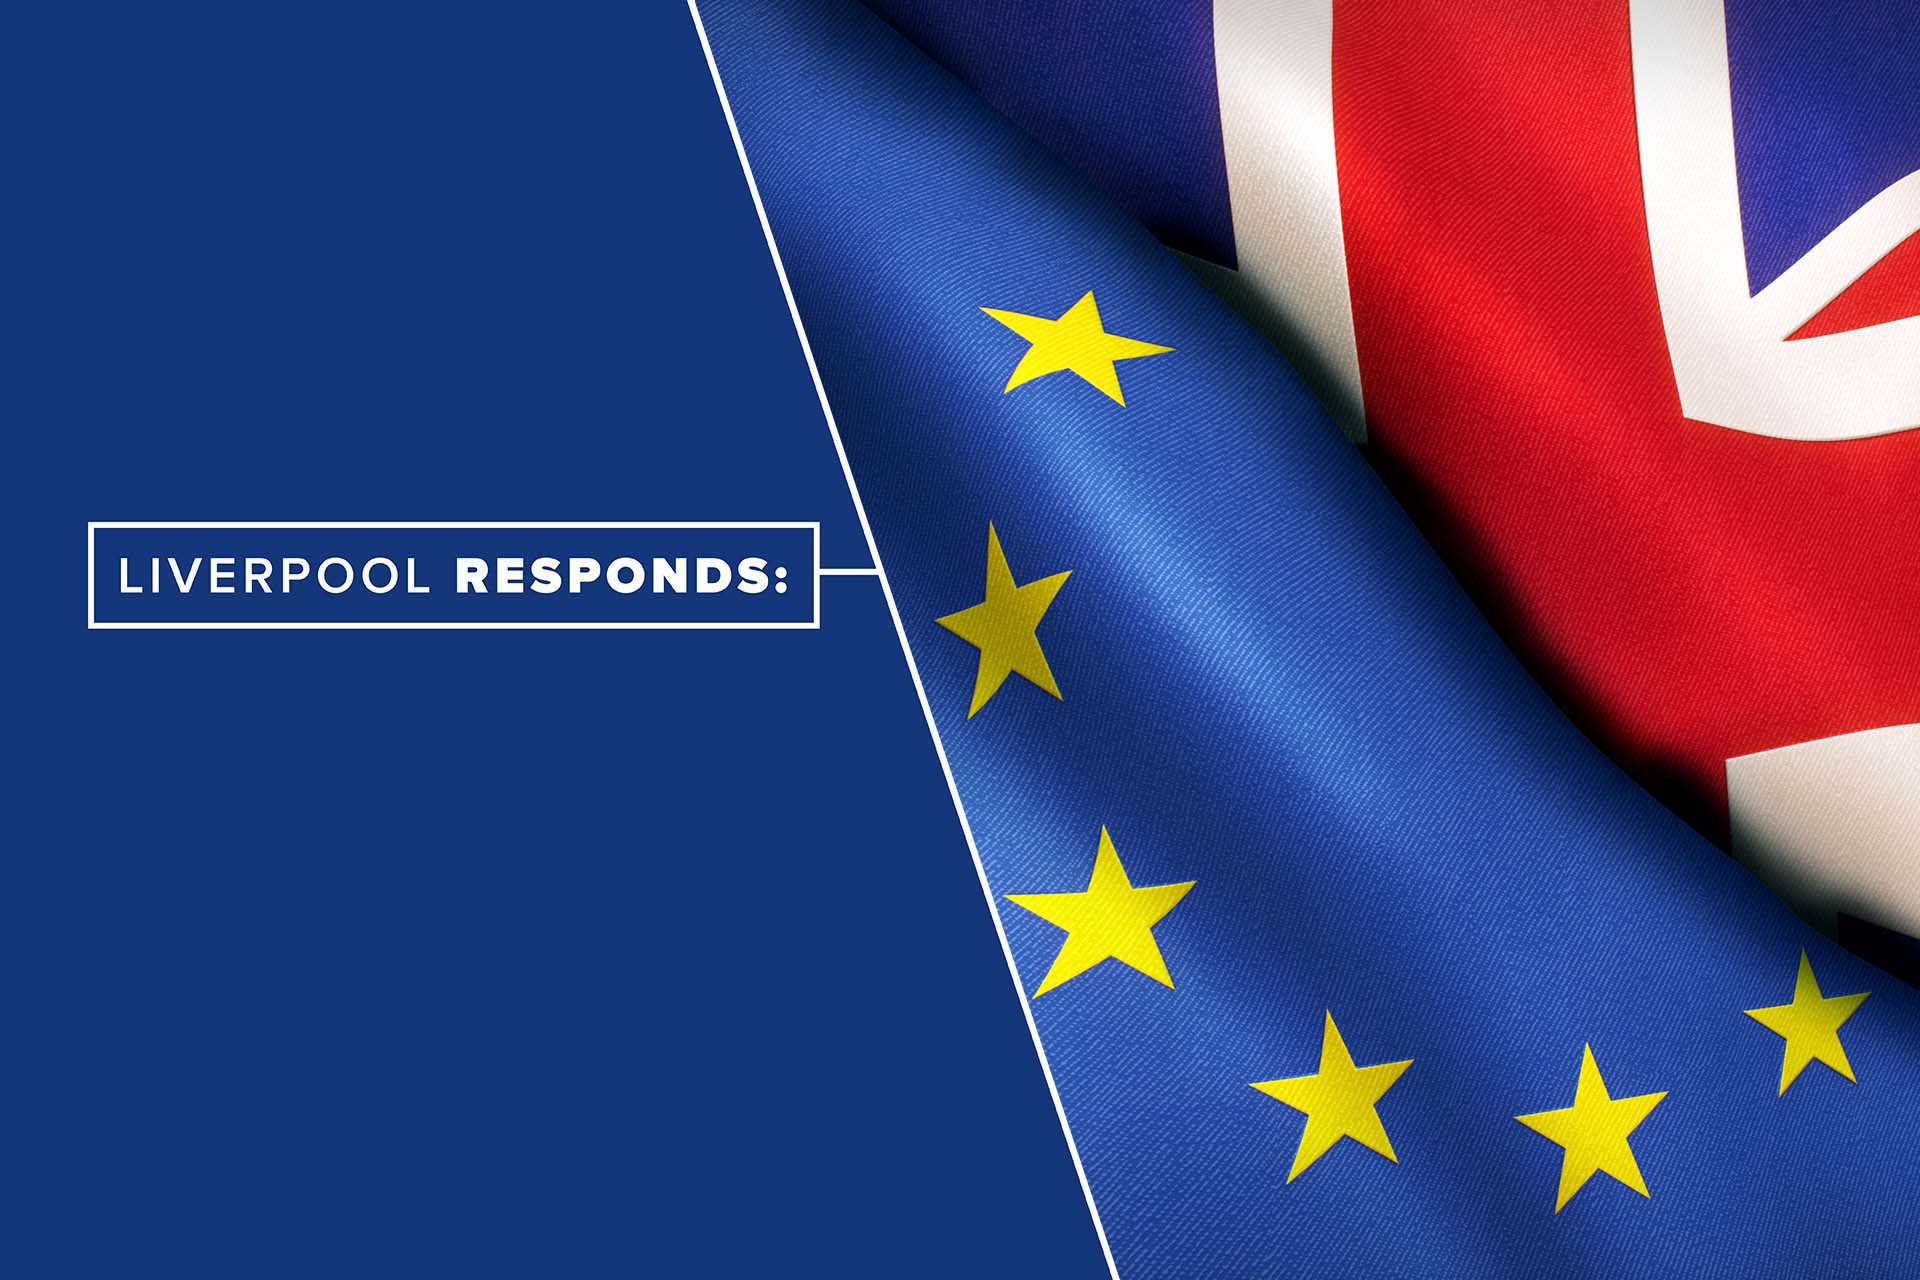 Liverpool Responds: Beyond Brexit